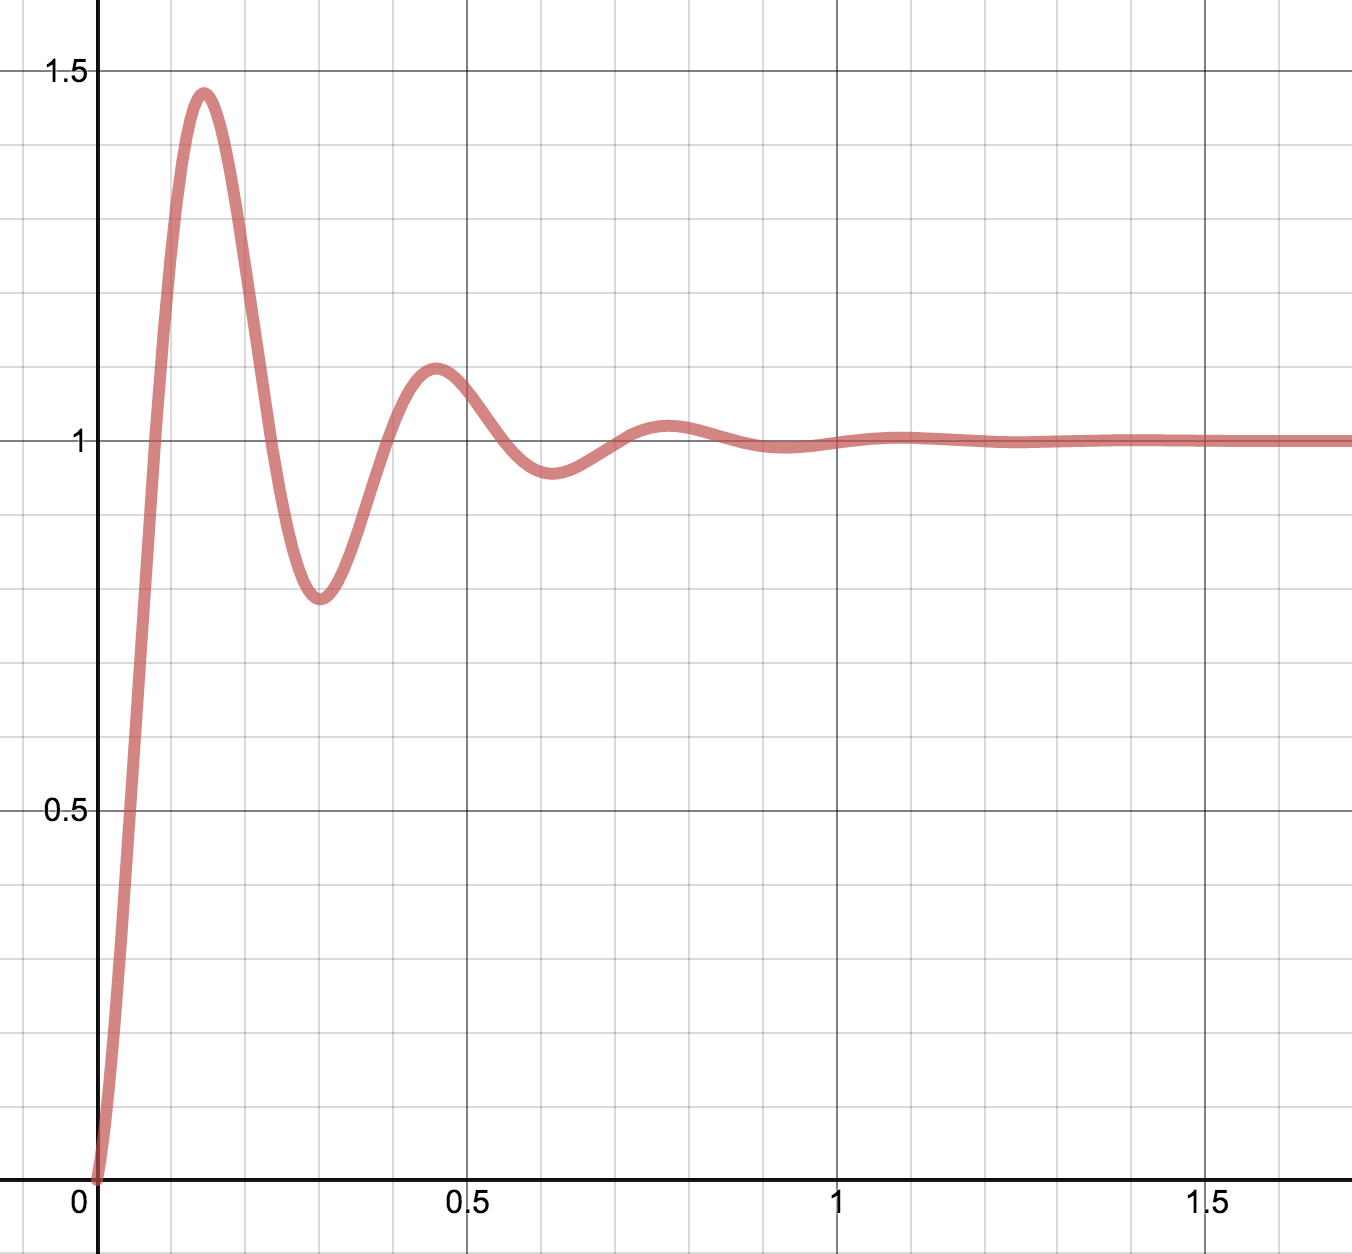 The graph of bounce animation interpolation